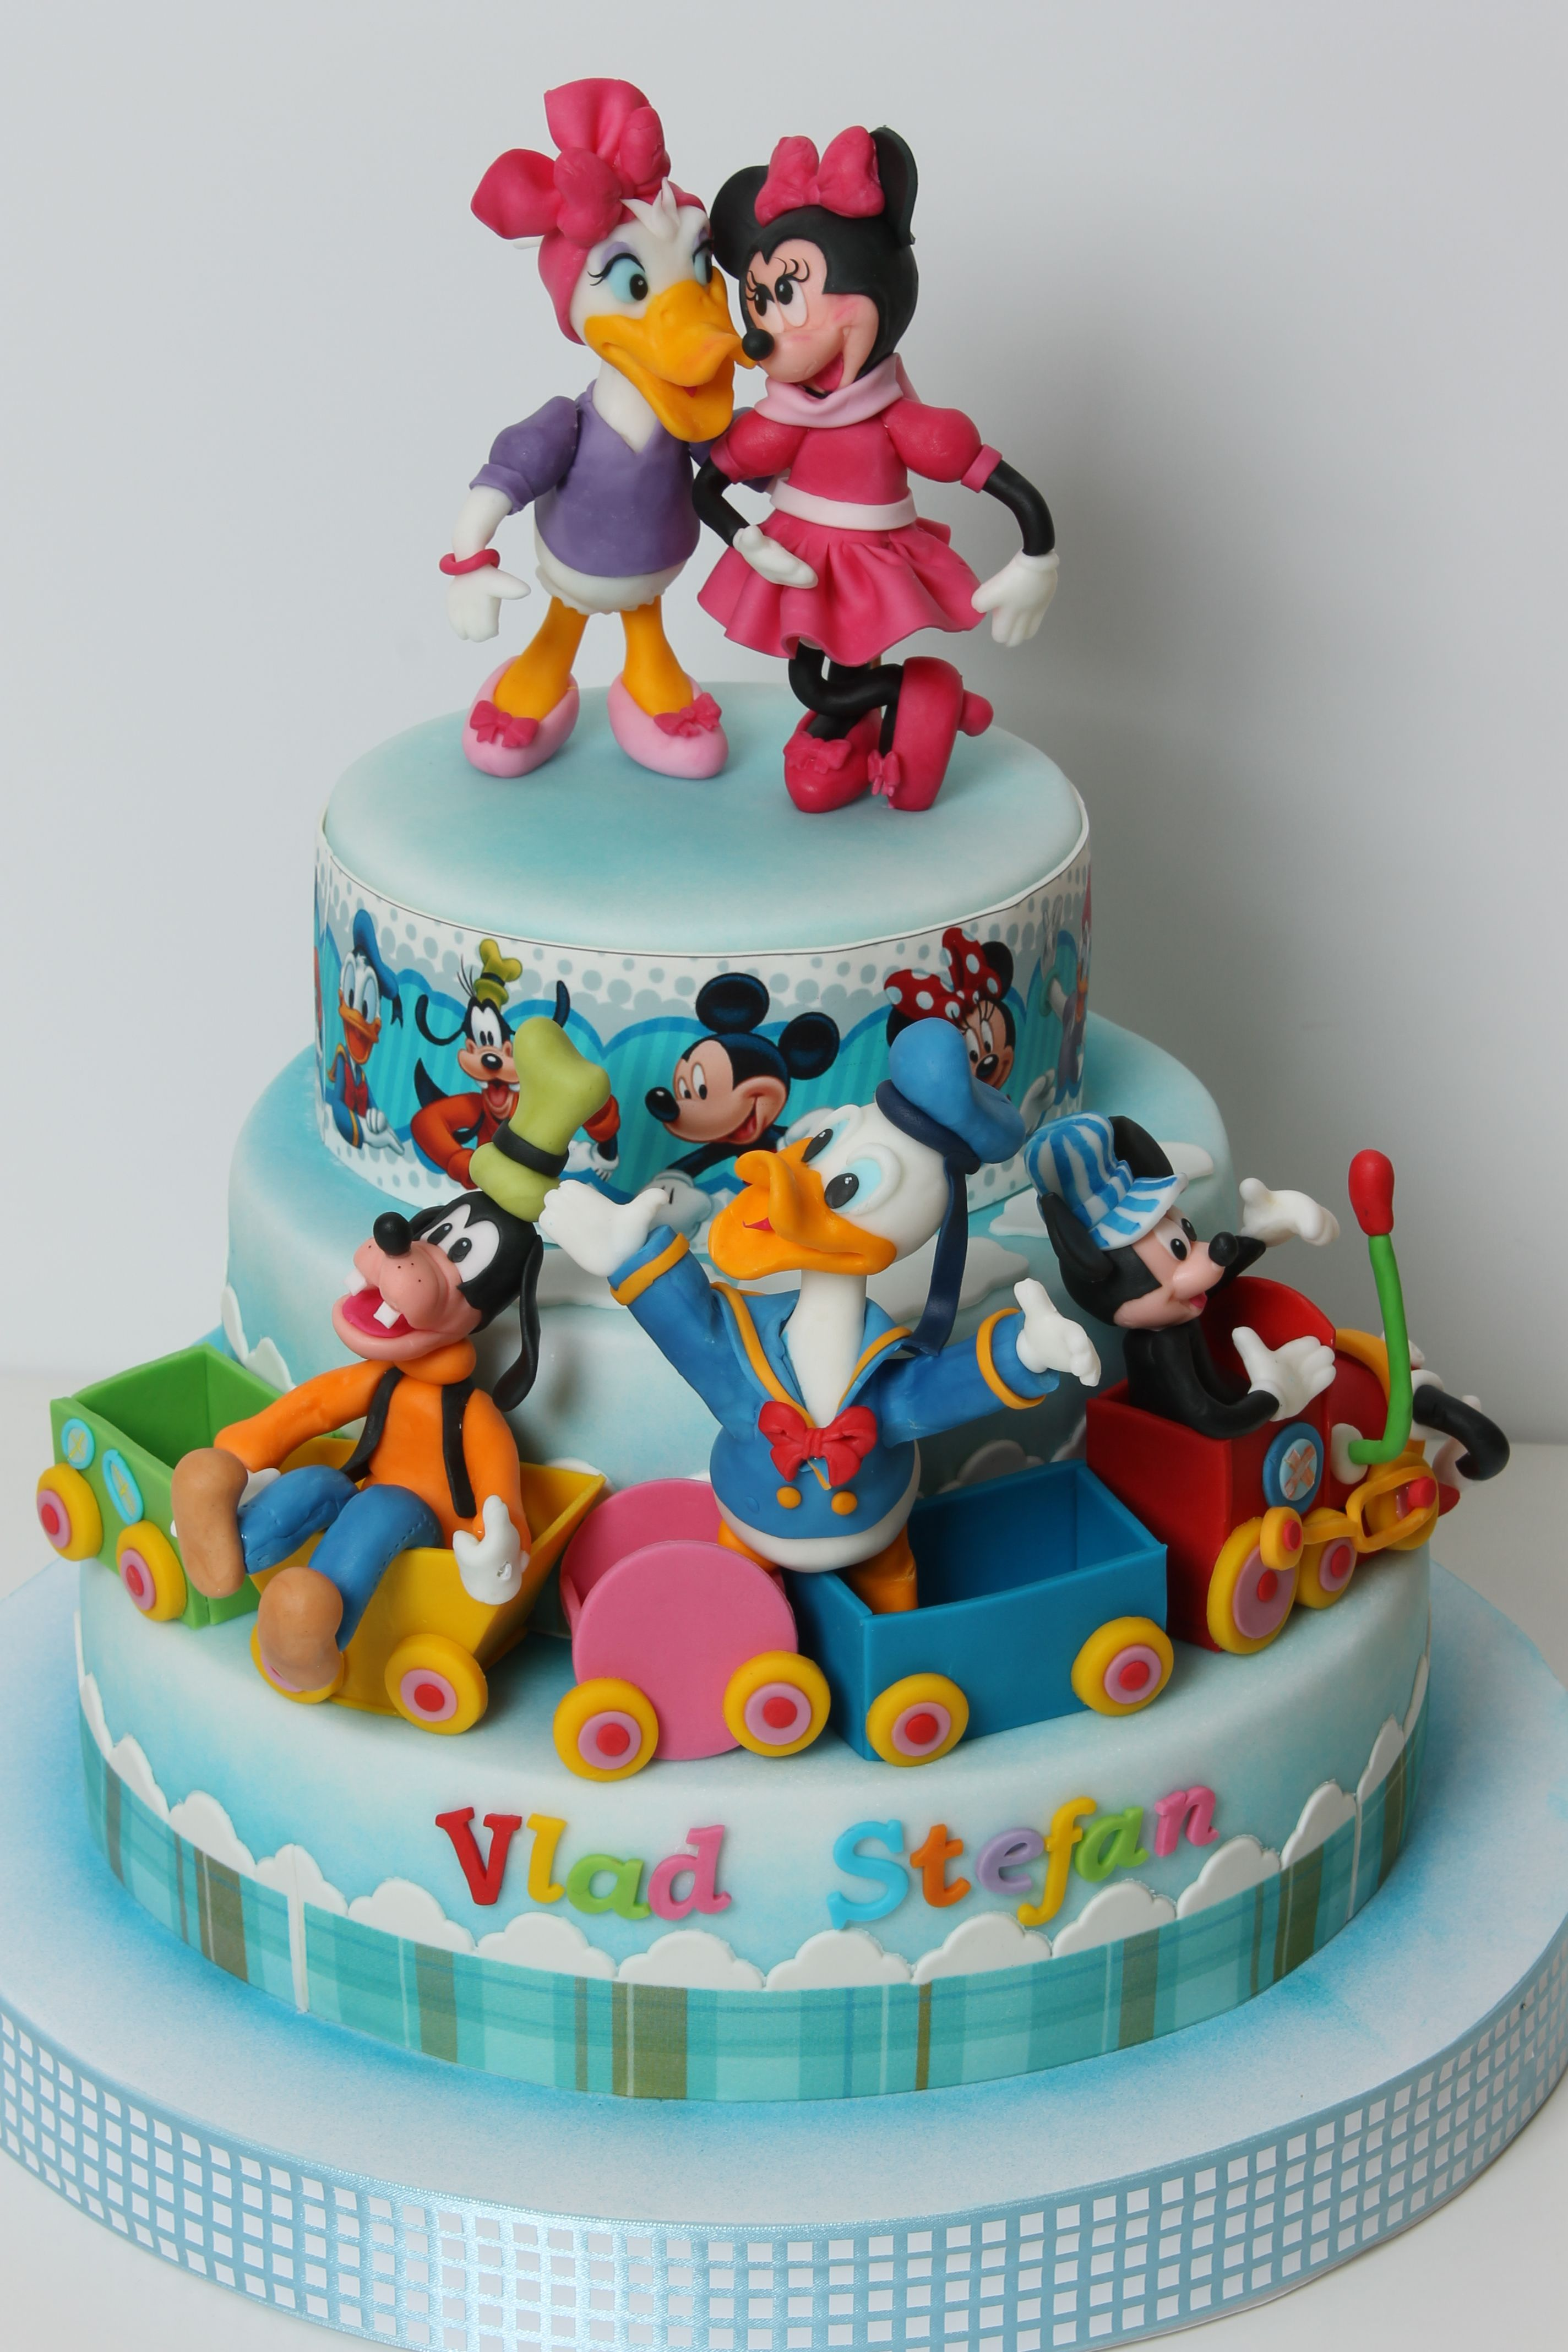 Outstanding Torturi Vioricas Cakes Bolo Minnie Bolo Bolos Infantis Personalised Birthday Cards Veneteletsinfo